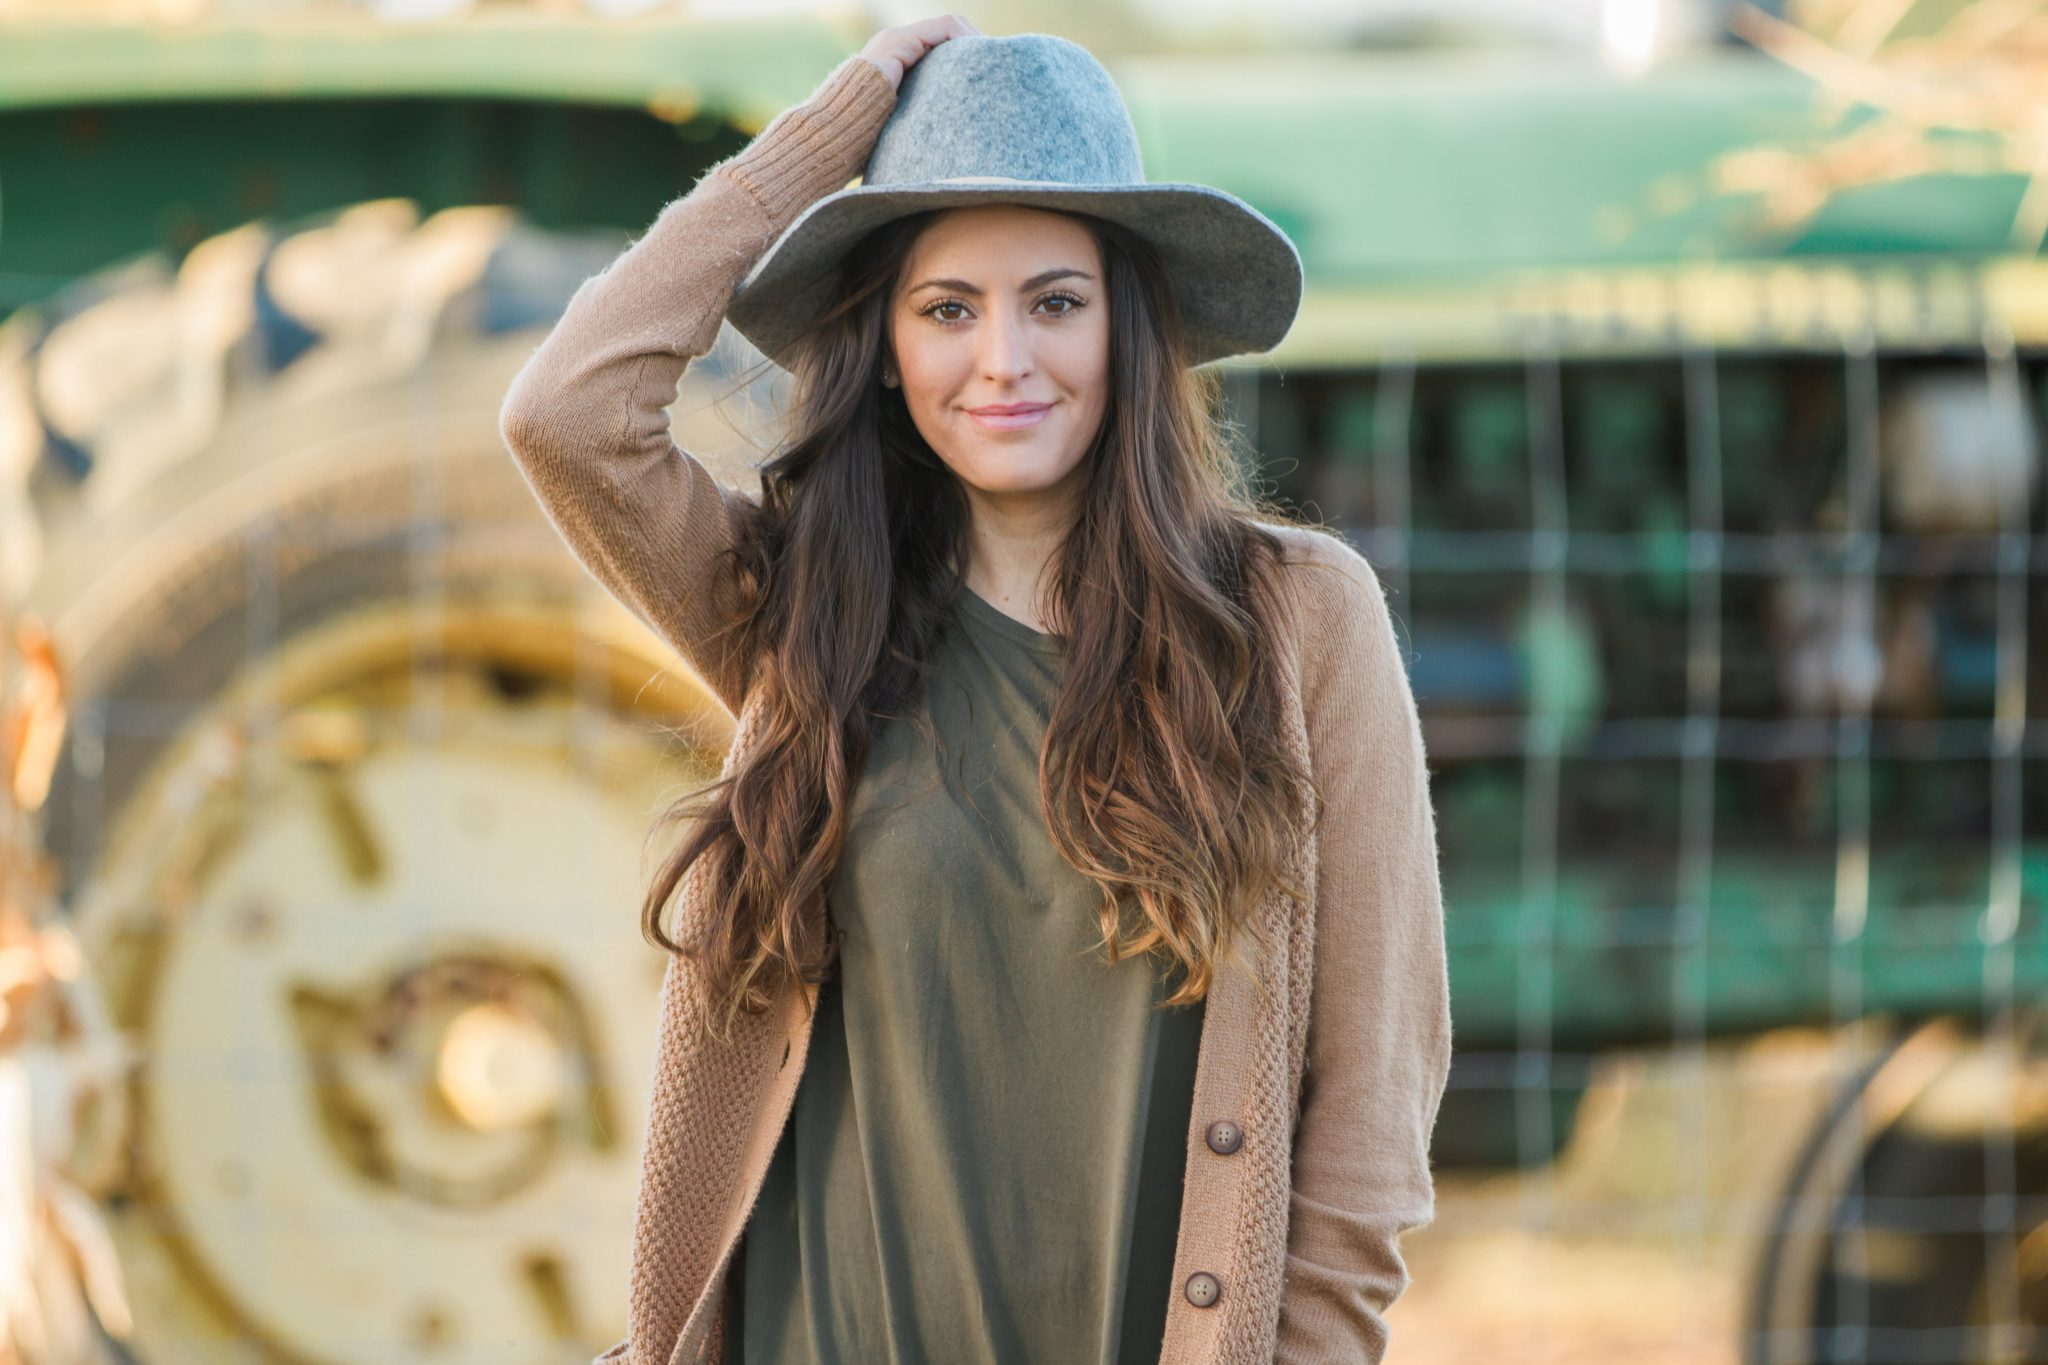 fall layers, pumpkin patch, picking pumpkins, fall farm, a trip to the farm, olive and camel, green and tan, fall earth tones, fall in the south, southern fall style, casual fall style